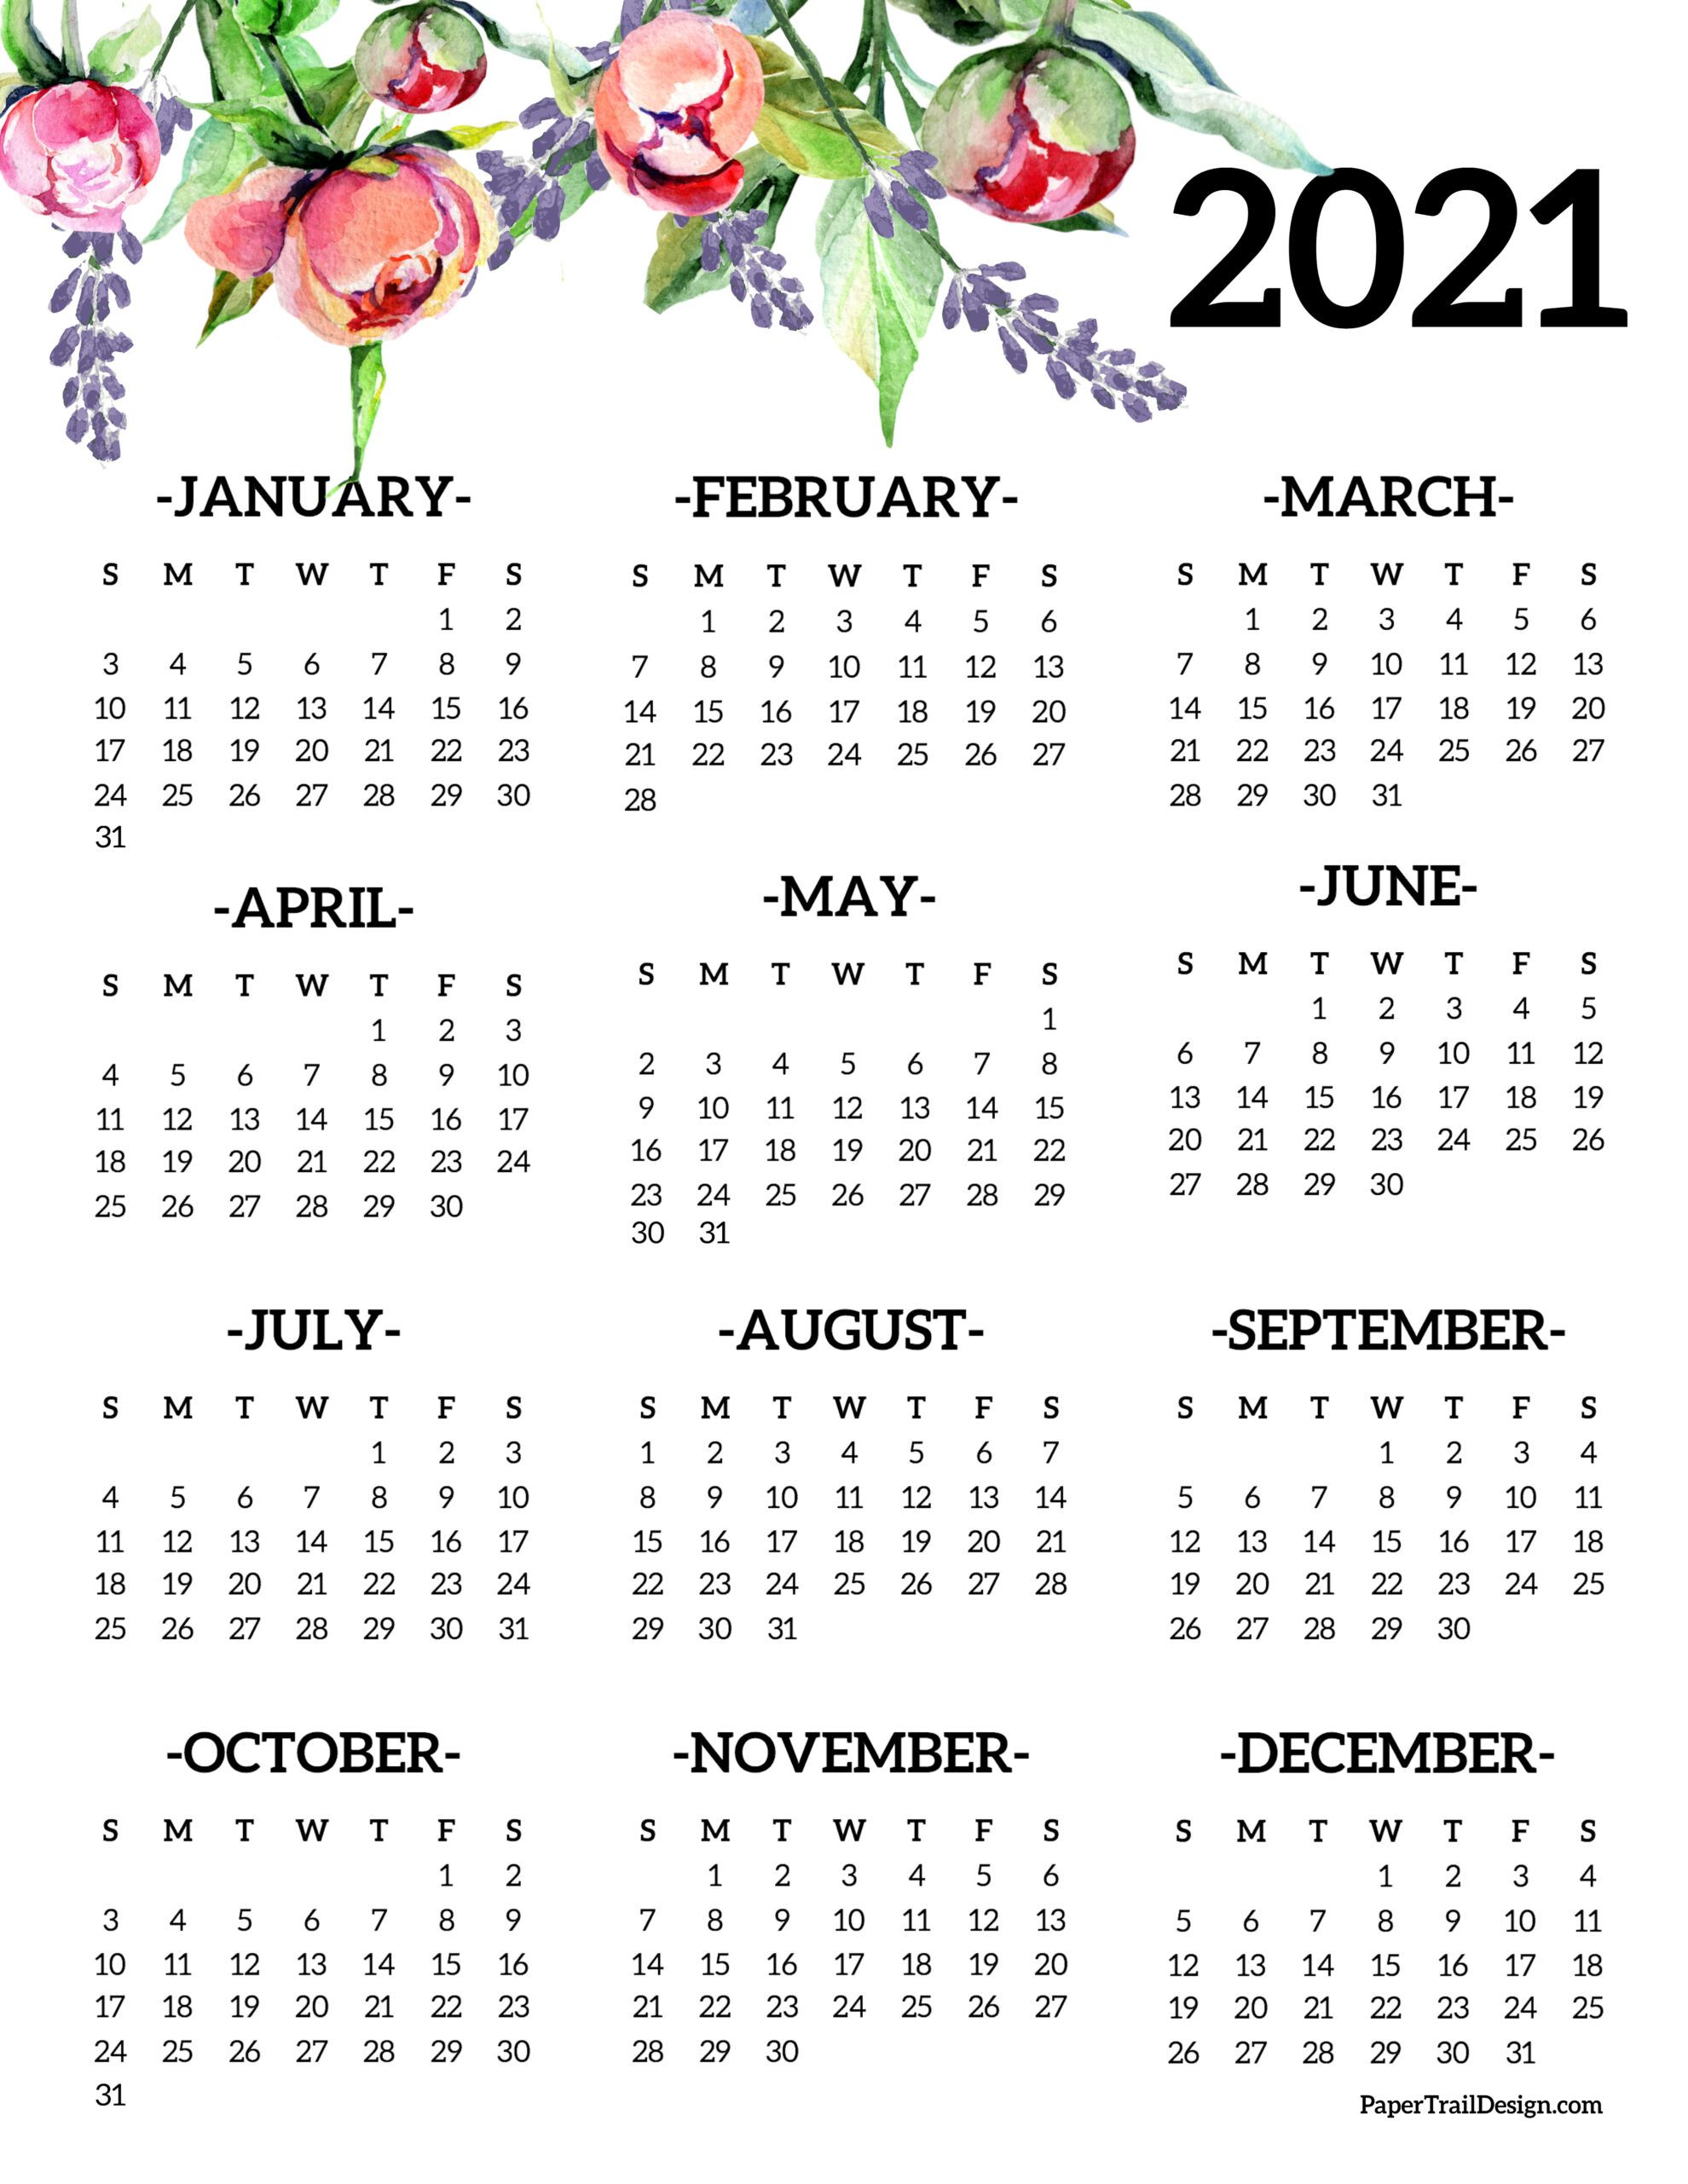 Free Printable 2021 One Page Floral Calendar | Paper Trail Design